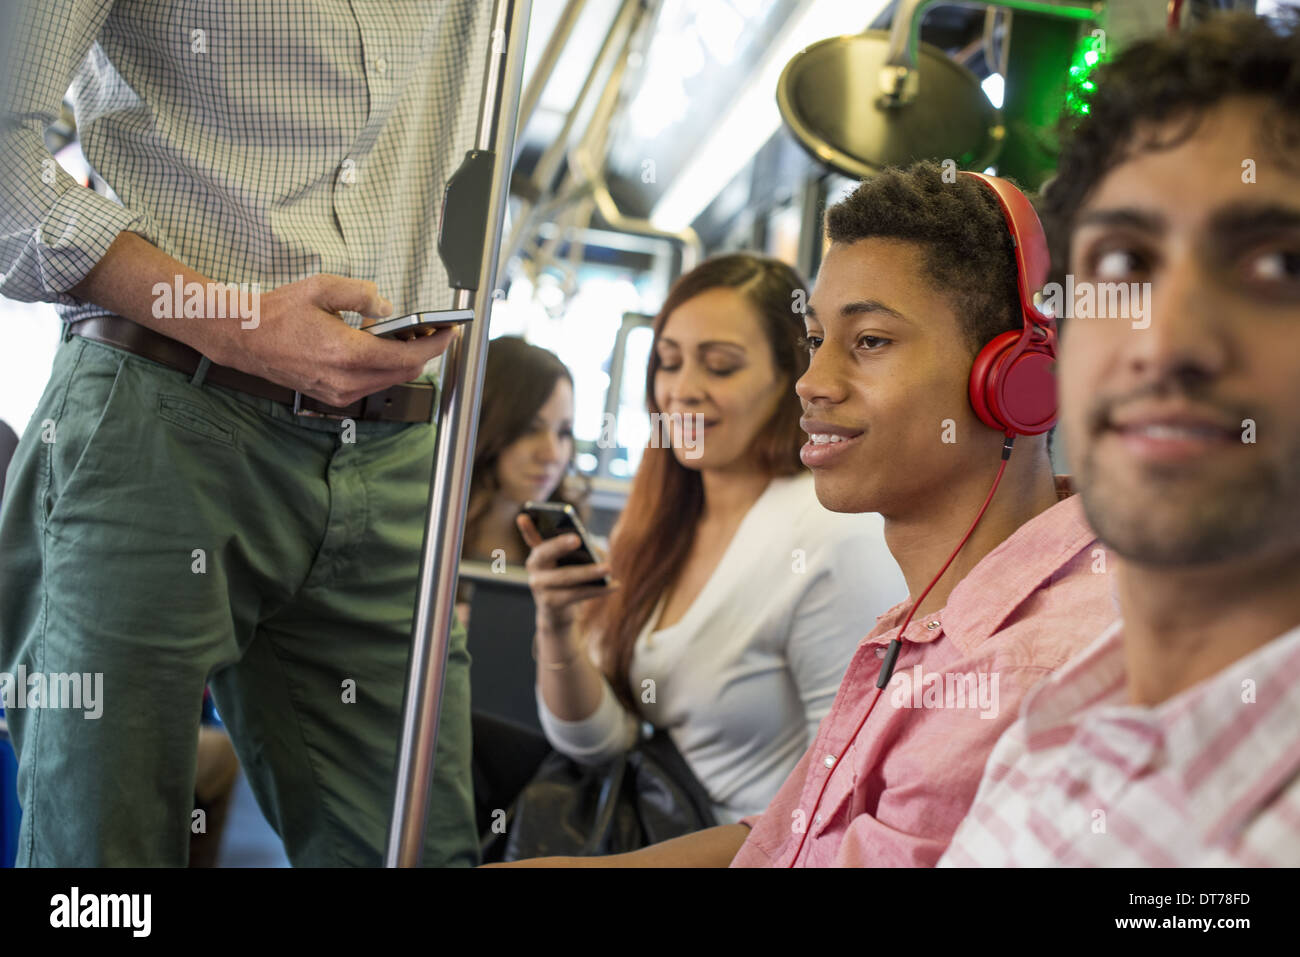 men and women on a city bus, in New York city. A man with headphones on. A man and a woman checking their smart phones. - Stock Image